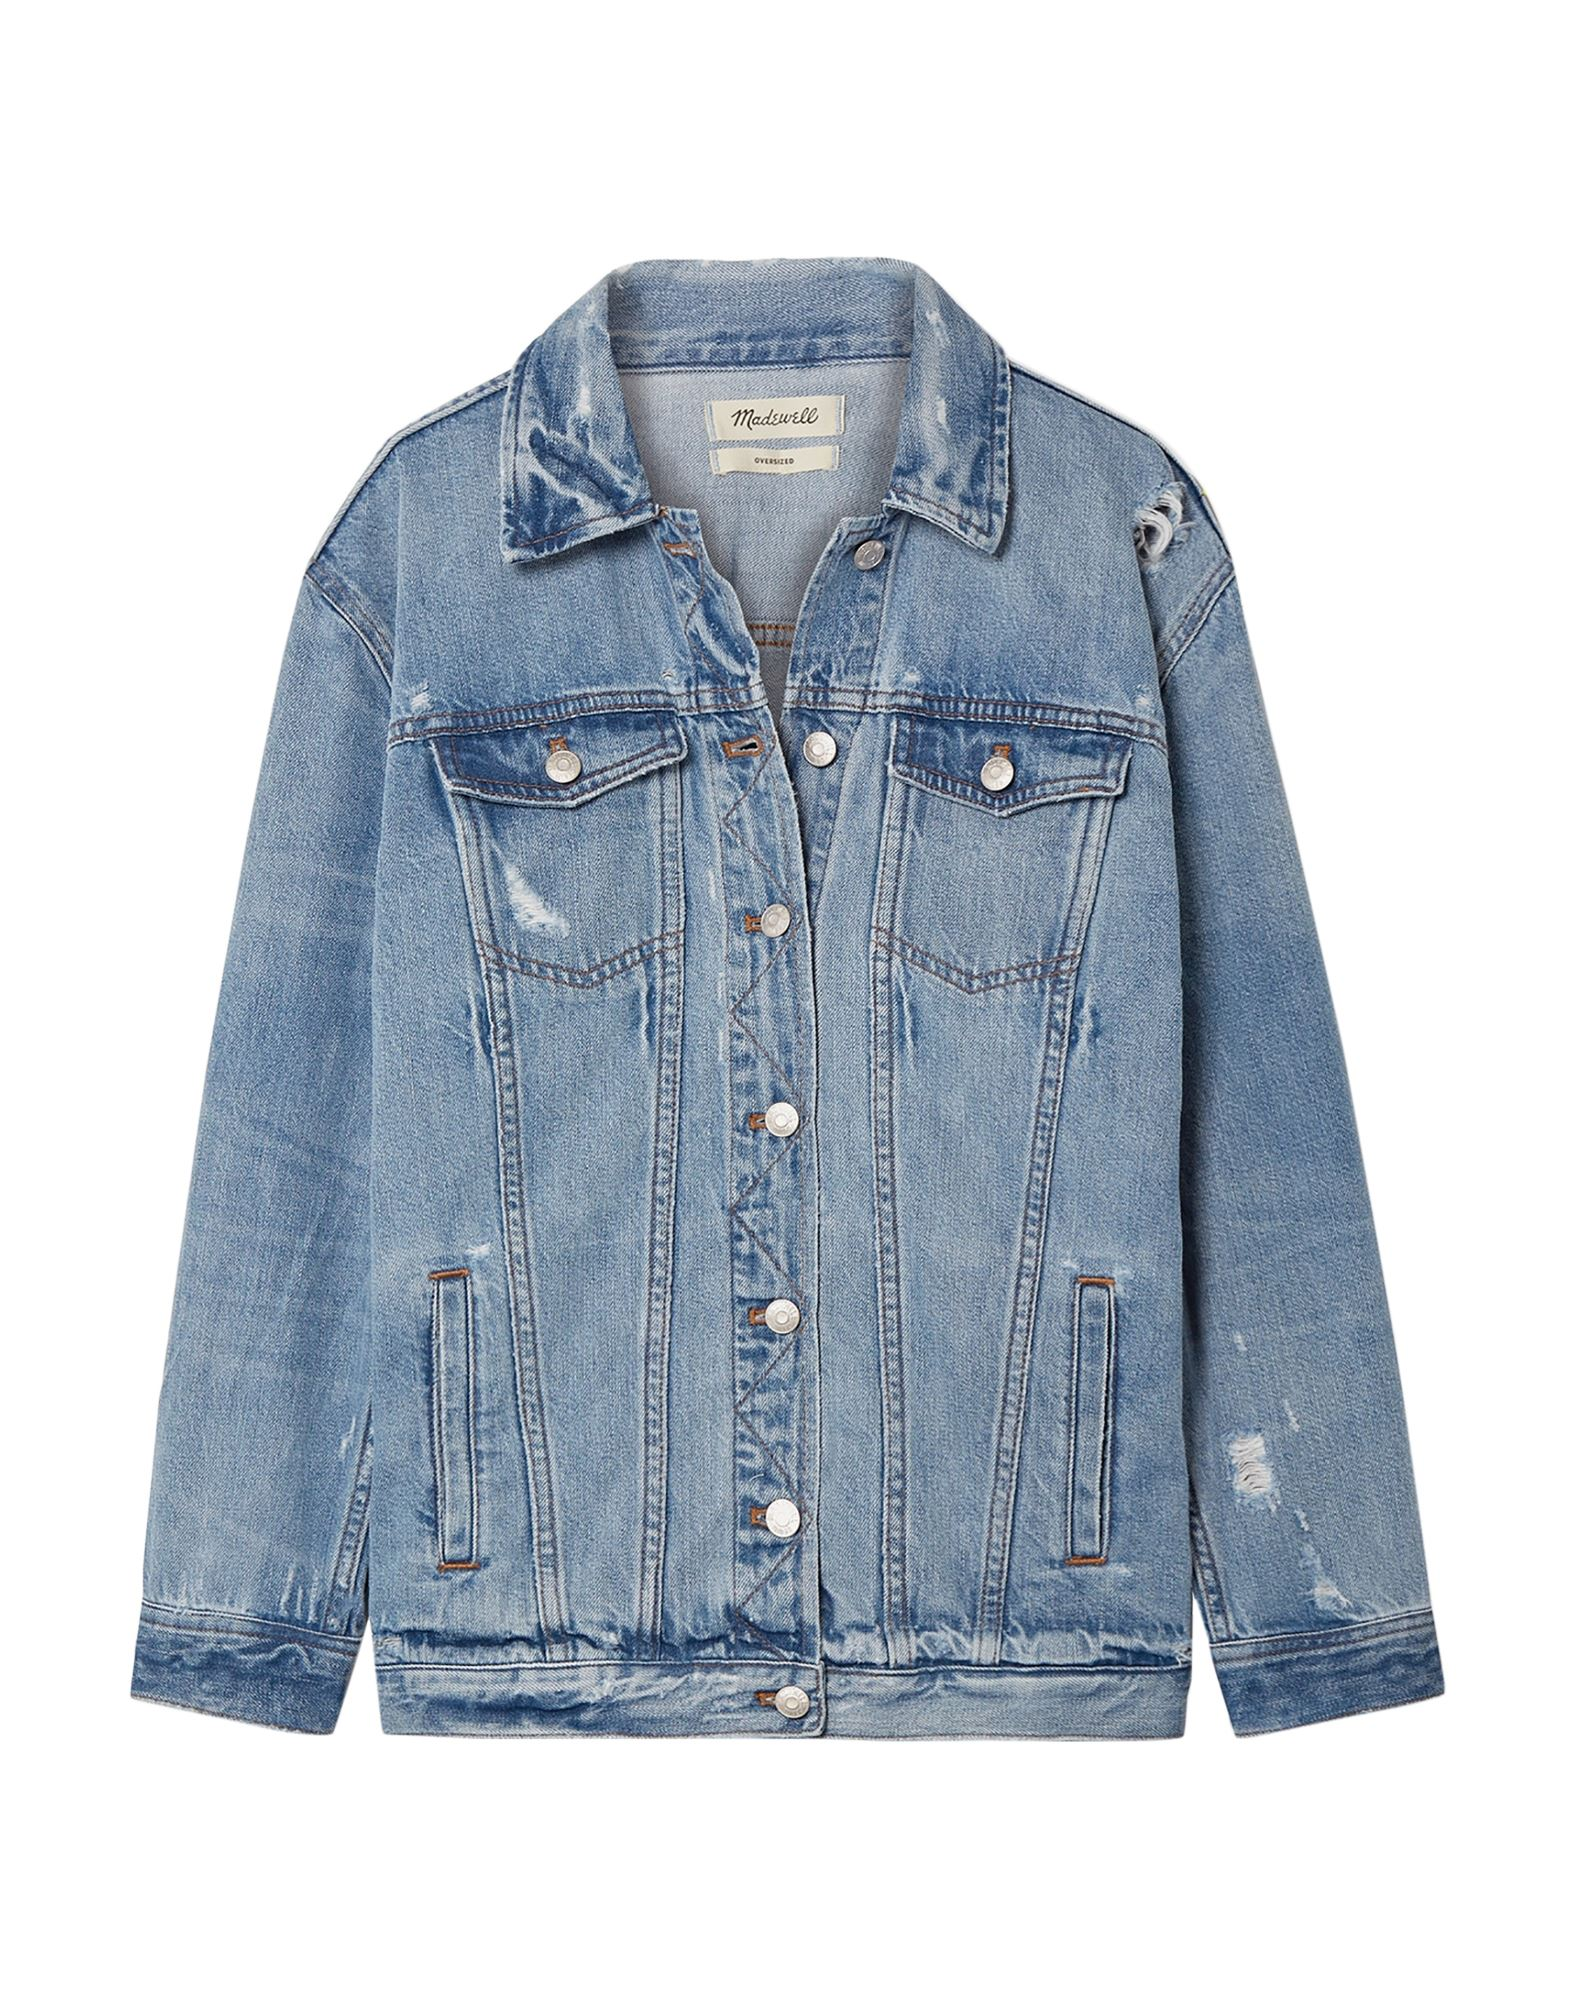 MADEWELL Denim outerwear. denim, worn effect, faded, no appliqués, solid color, medium wash, long sleeves, classic neckline, single-breasted, front closure, button closing, multipockets, unlined. 100% Cotton